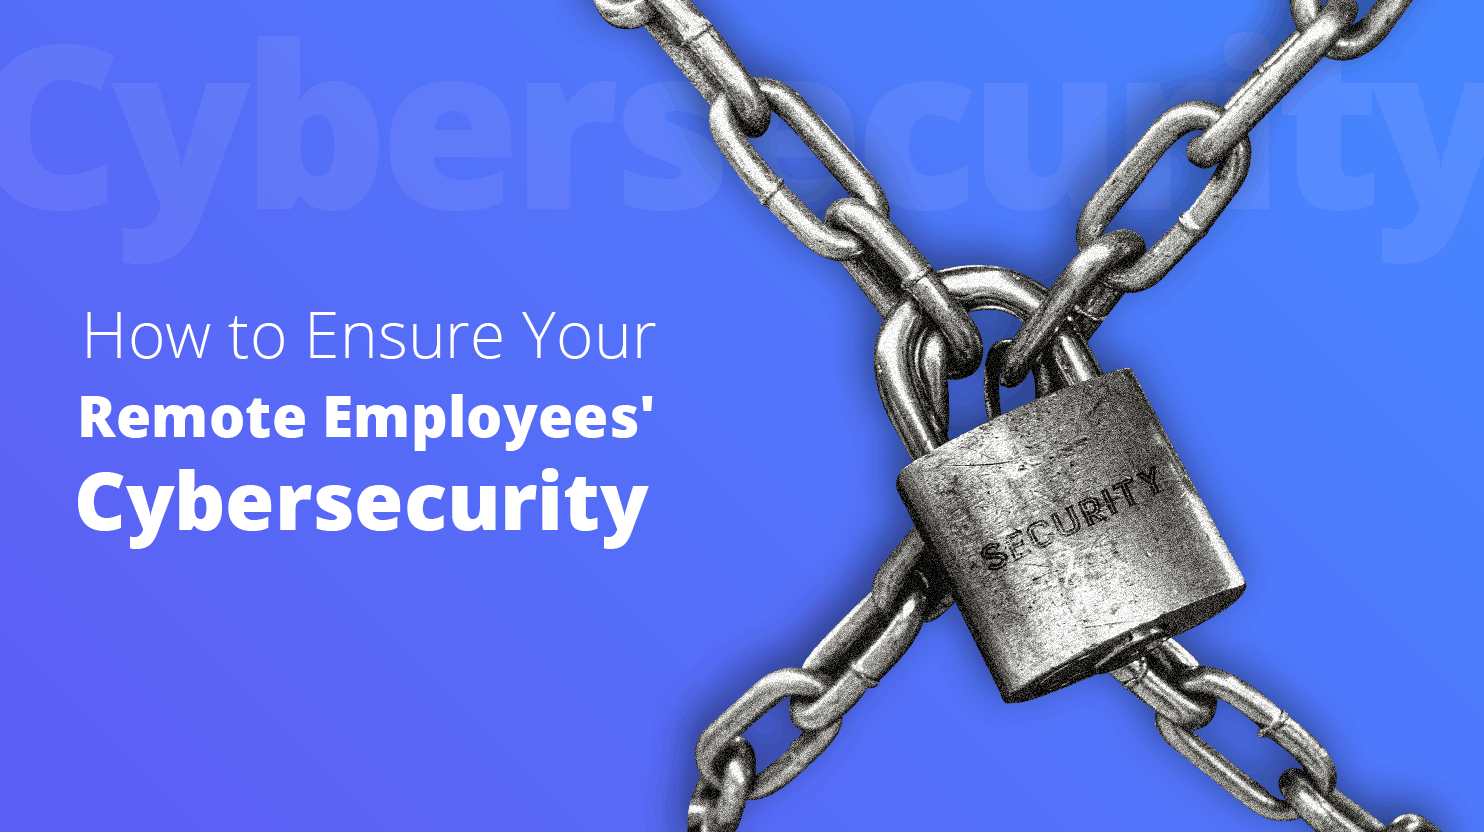 How to Ensure Your Remote Employees' Cybersecurity